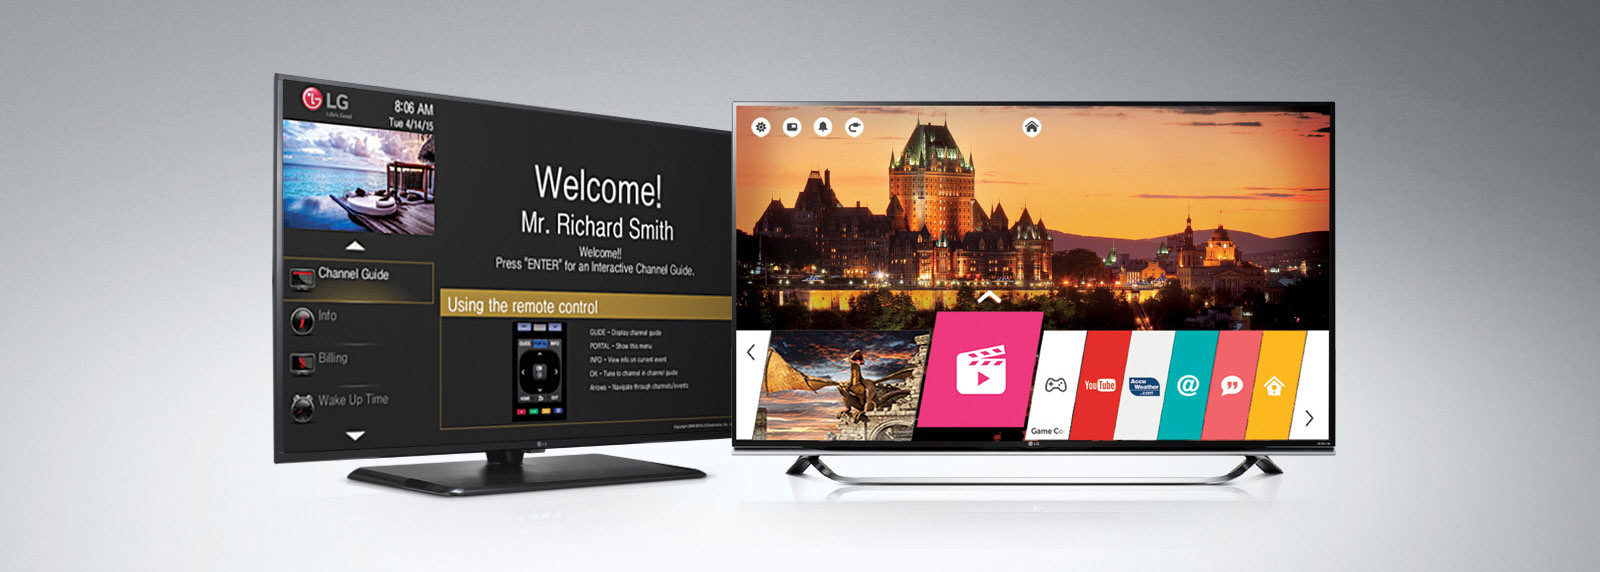 LG Hospitality TV Monitors